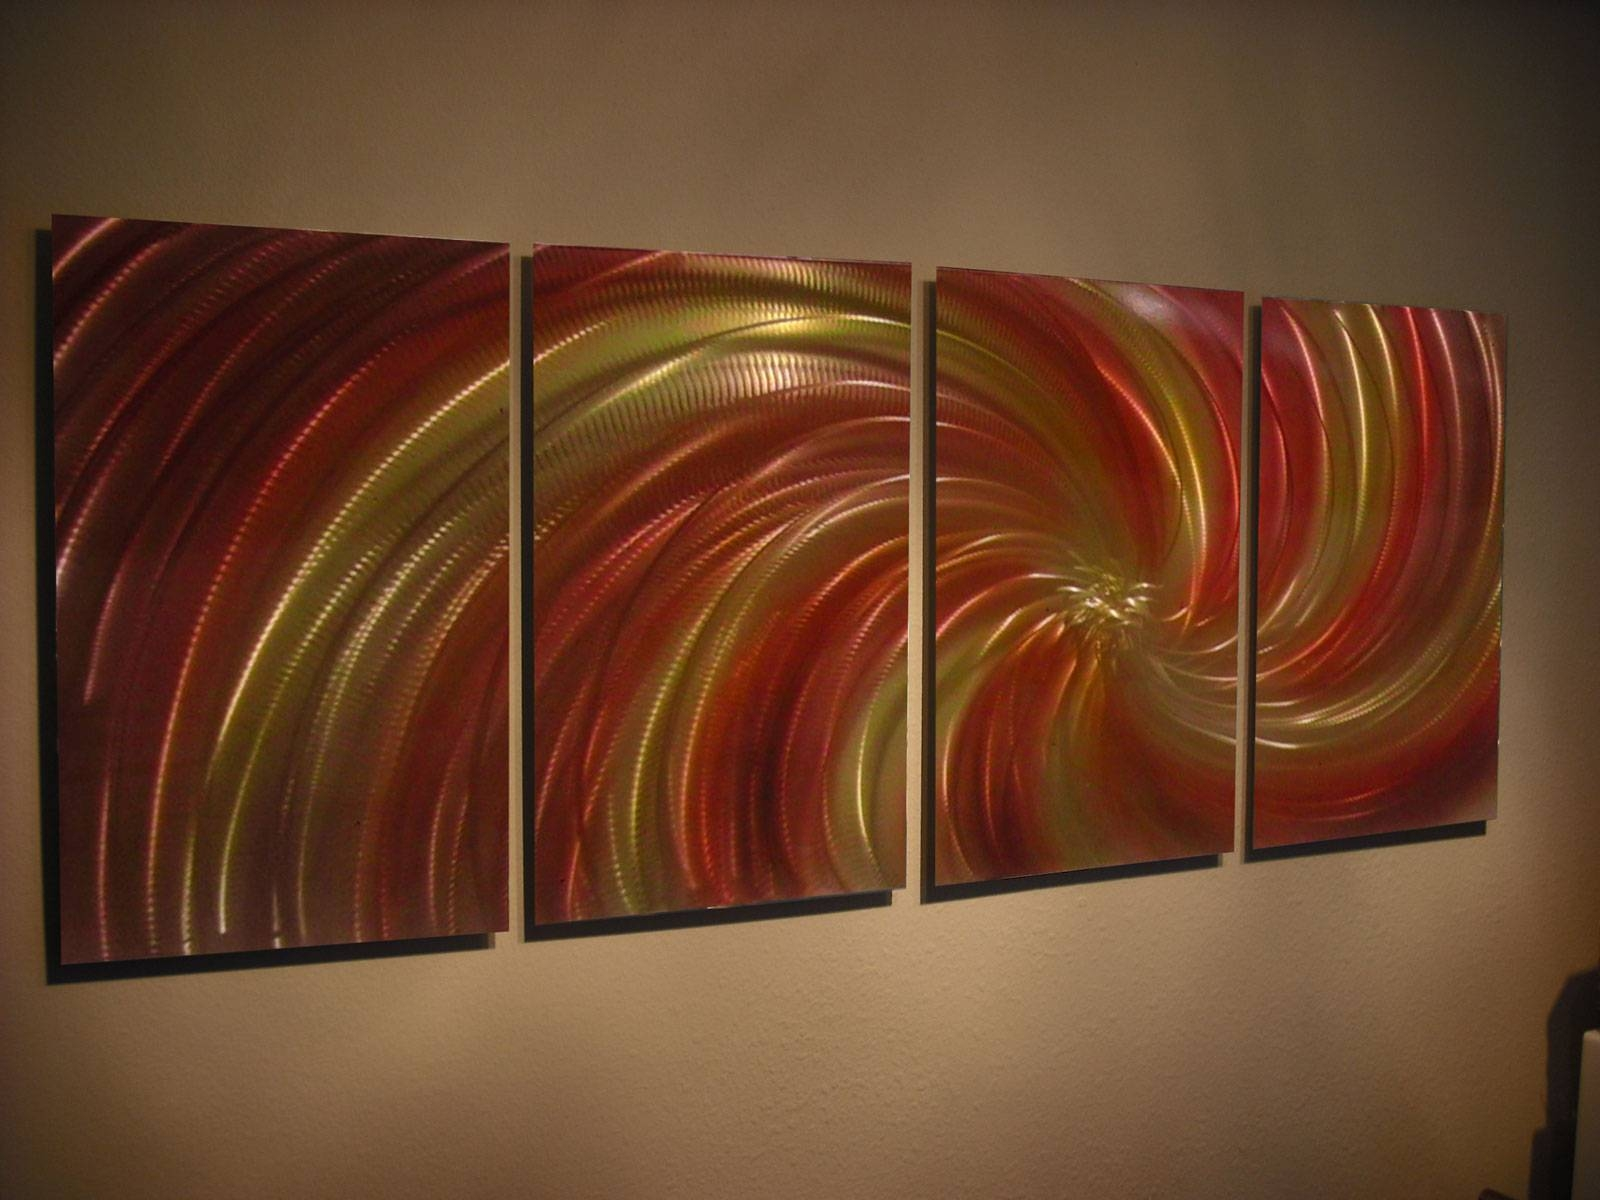 Harvest – Abstract Metal Wall Art Contemporary Modern Decor Within Most Recent Orange Metal Wall Art (View 8 of 20)